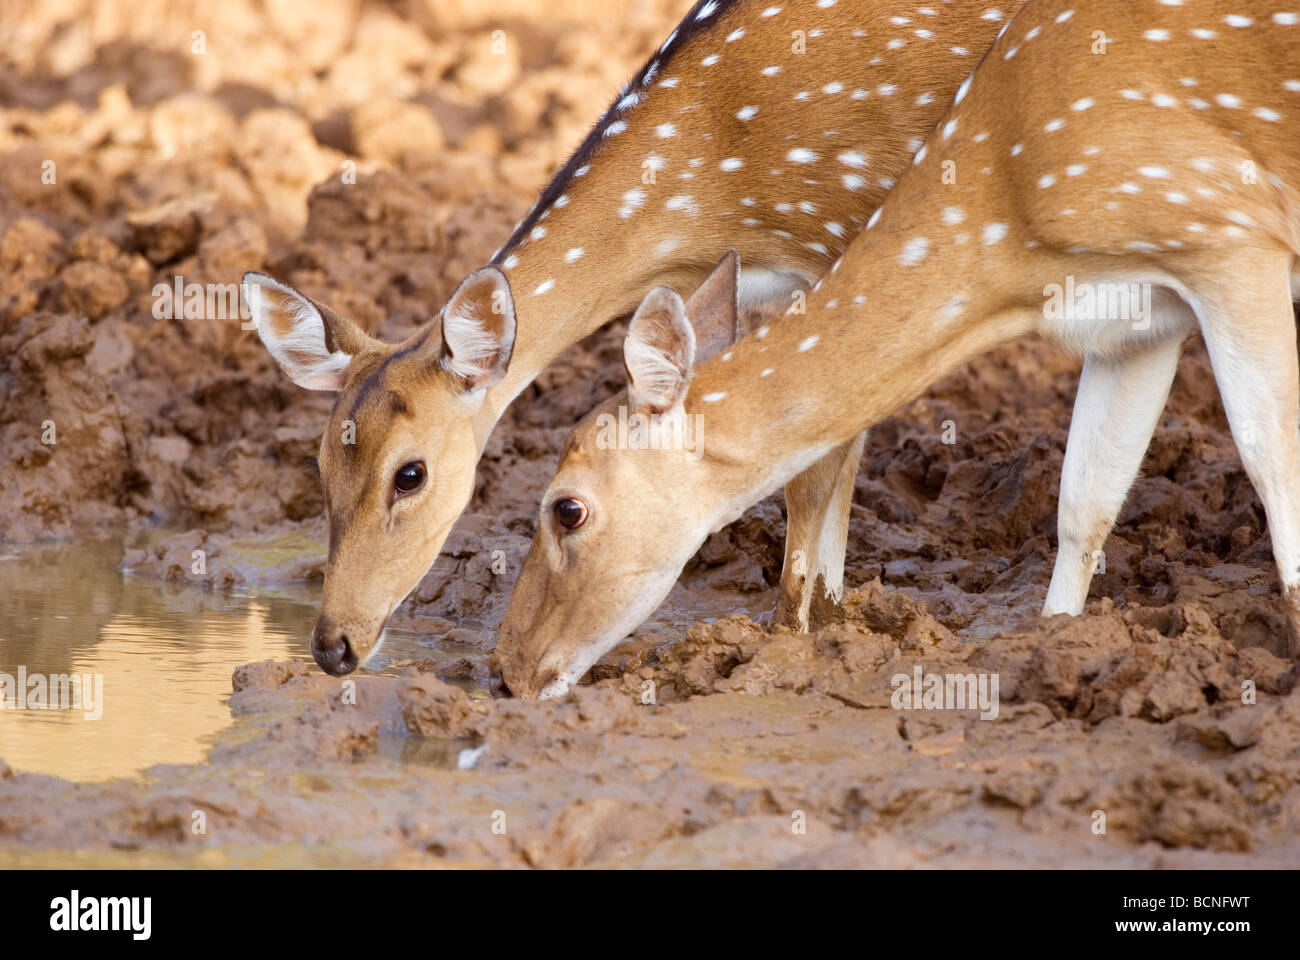 Spotted Deer (Axis axis) drinking from waterhole, Yala National Park, Sri Lanka - Stock Image